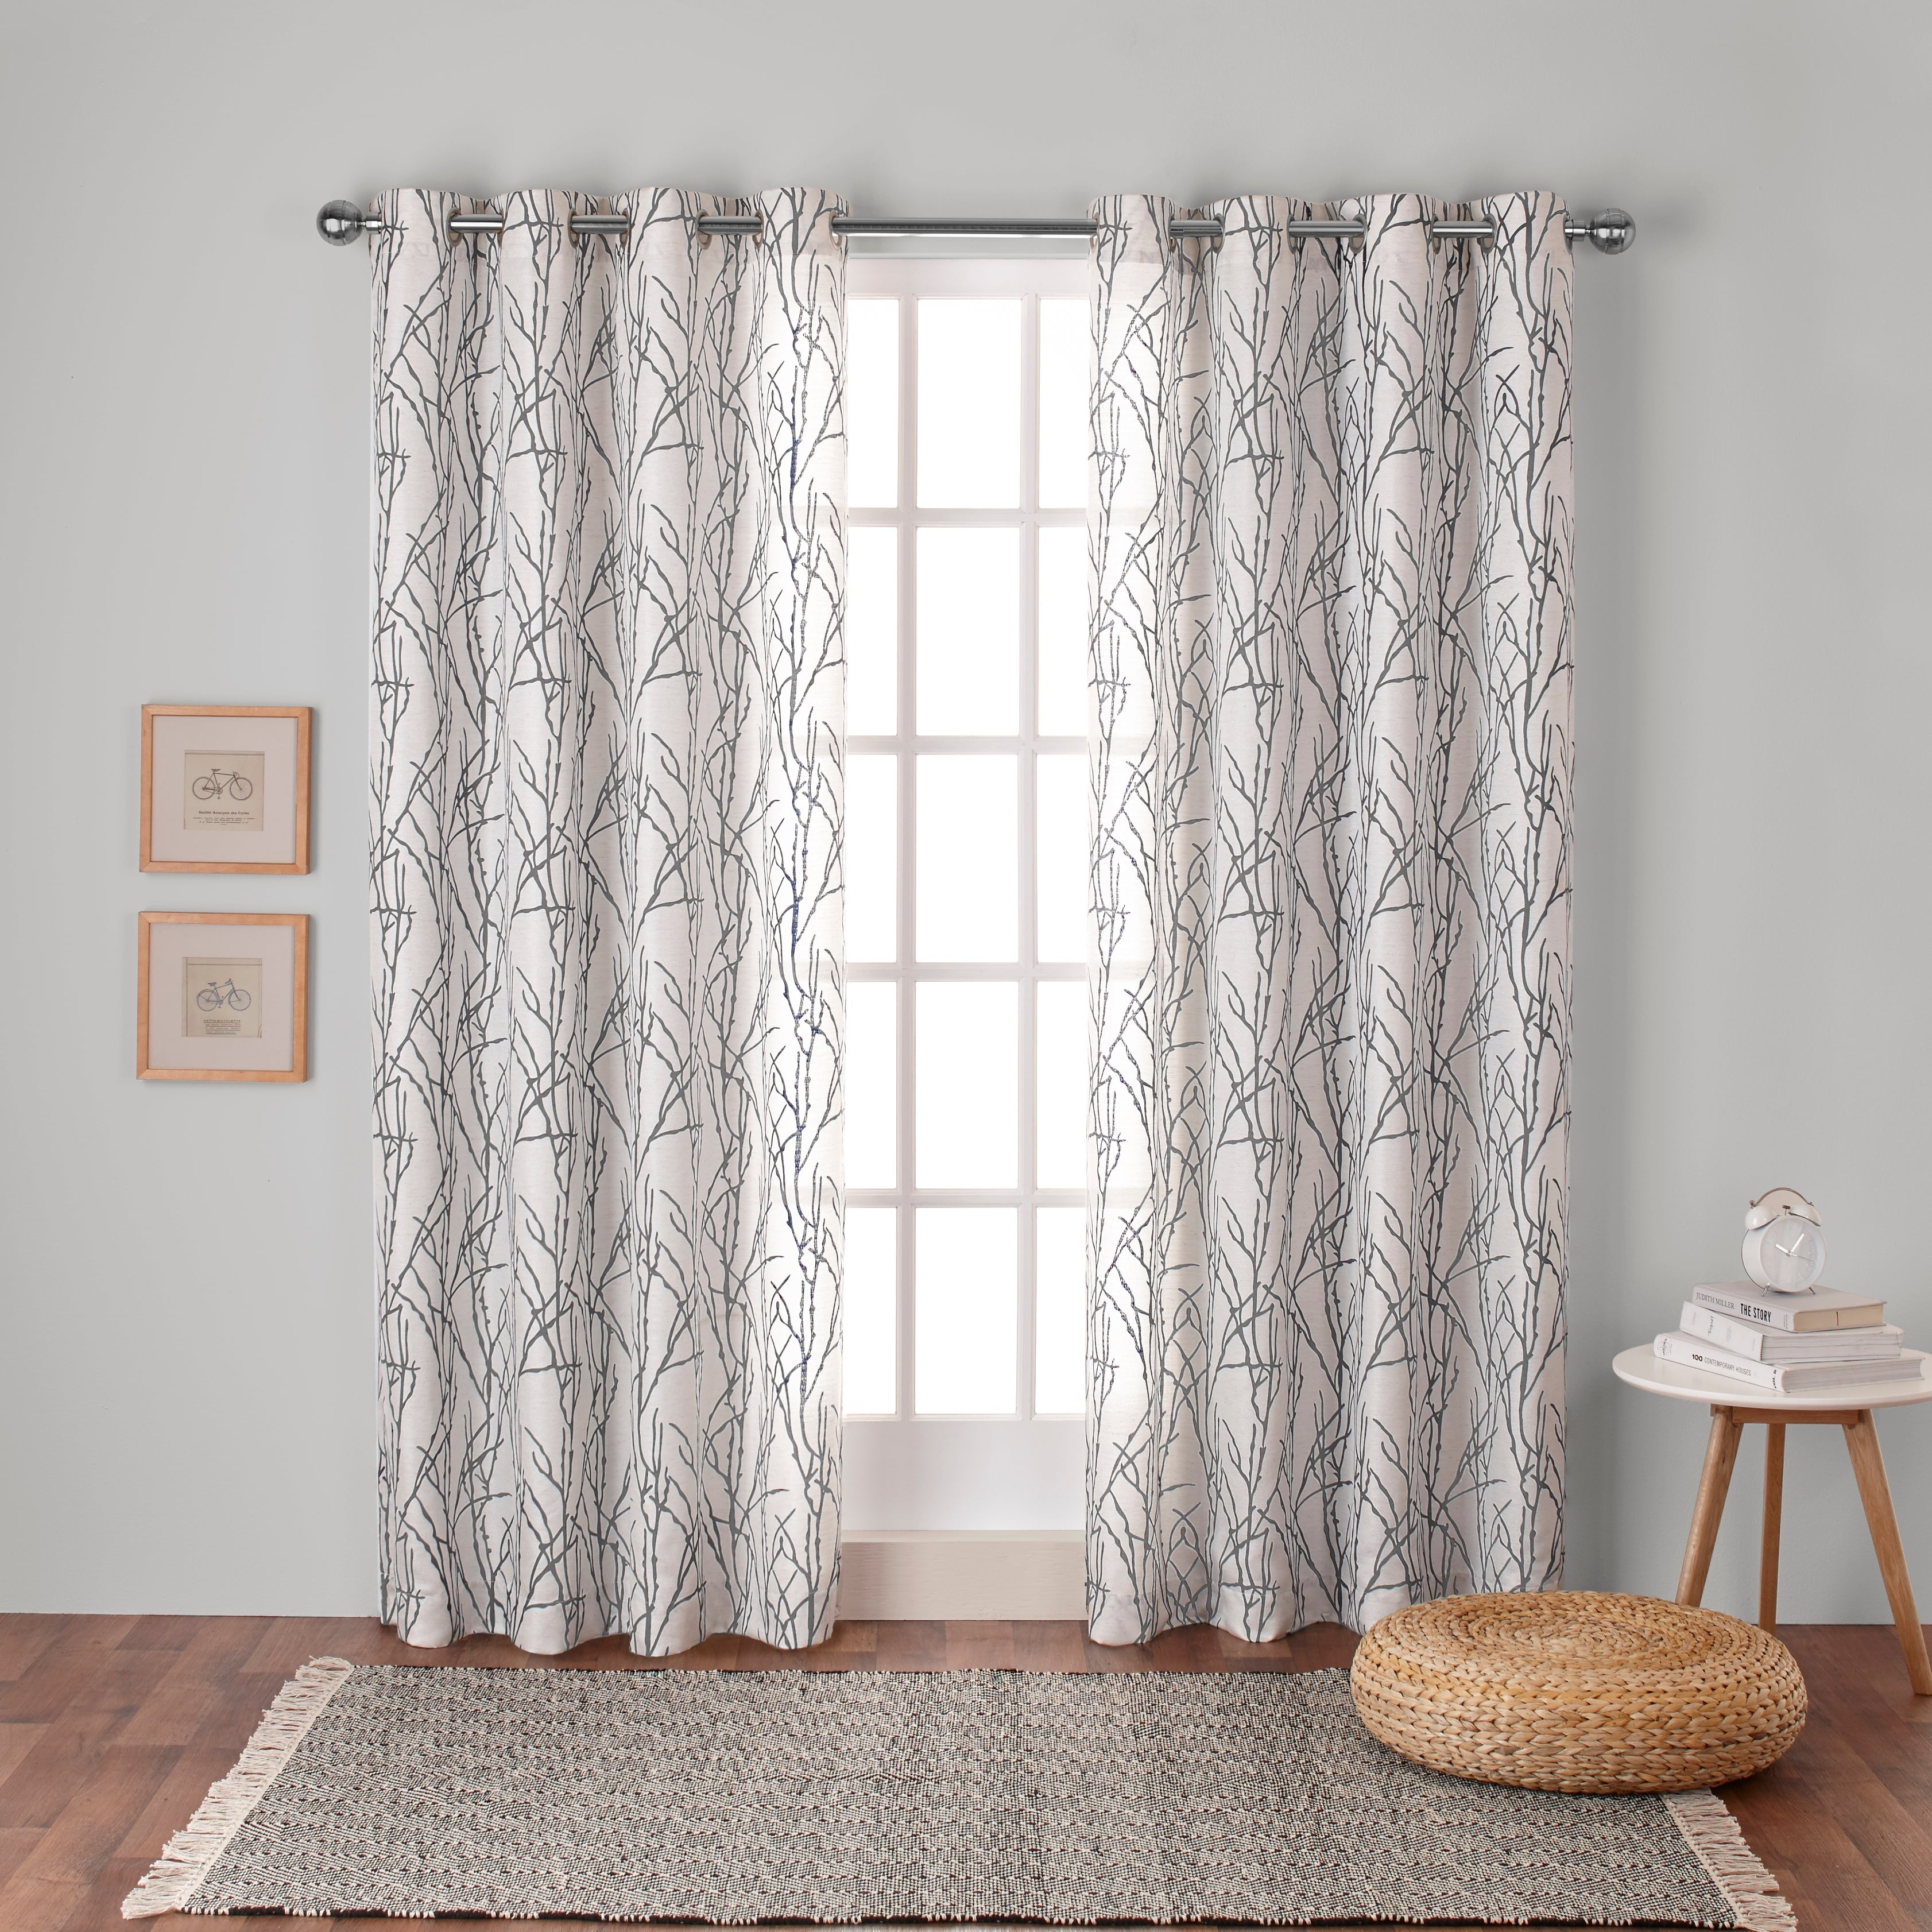 window nubby solid pdx curtains elements reviews linen treatments wayfair panels sheer gray curtain